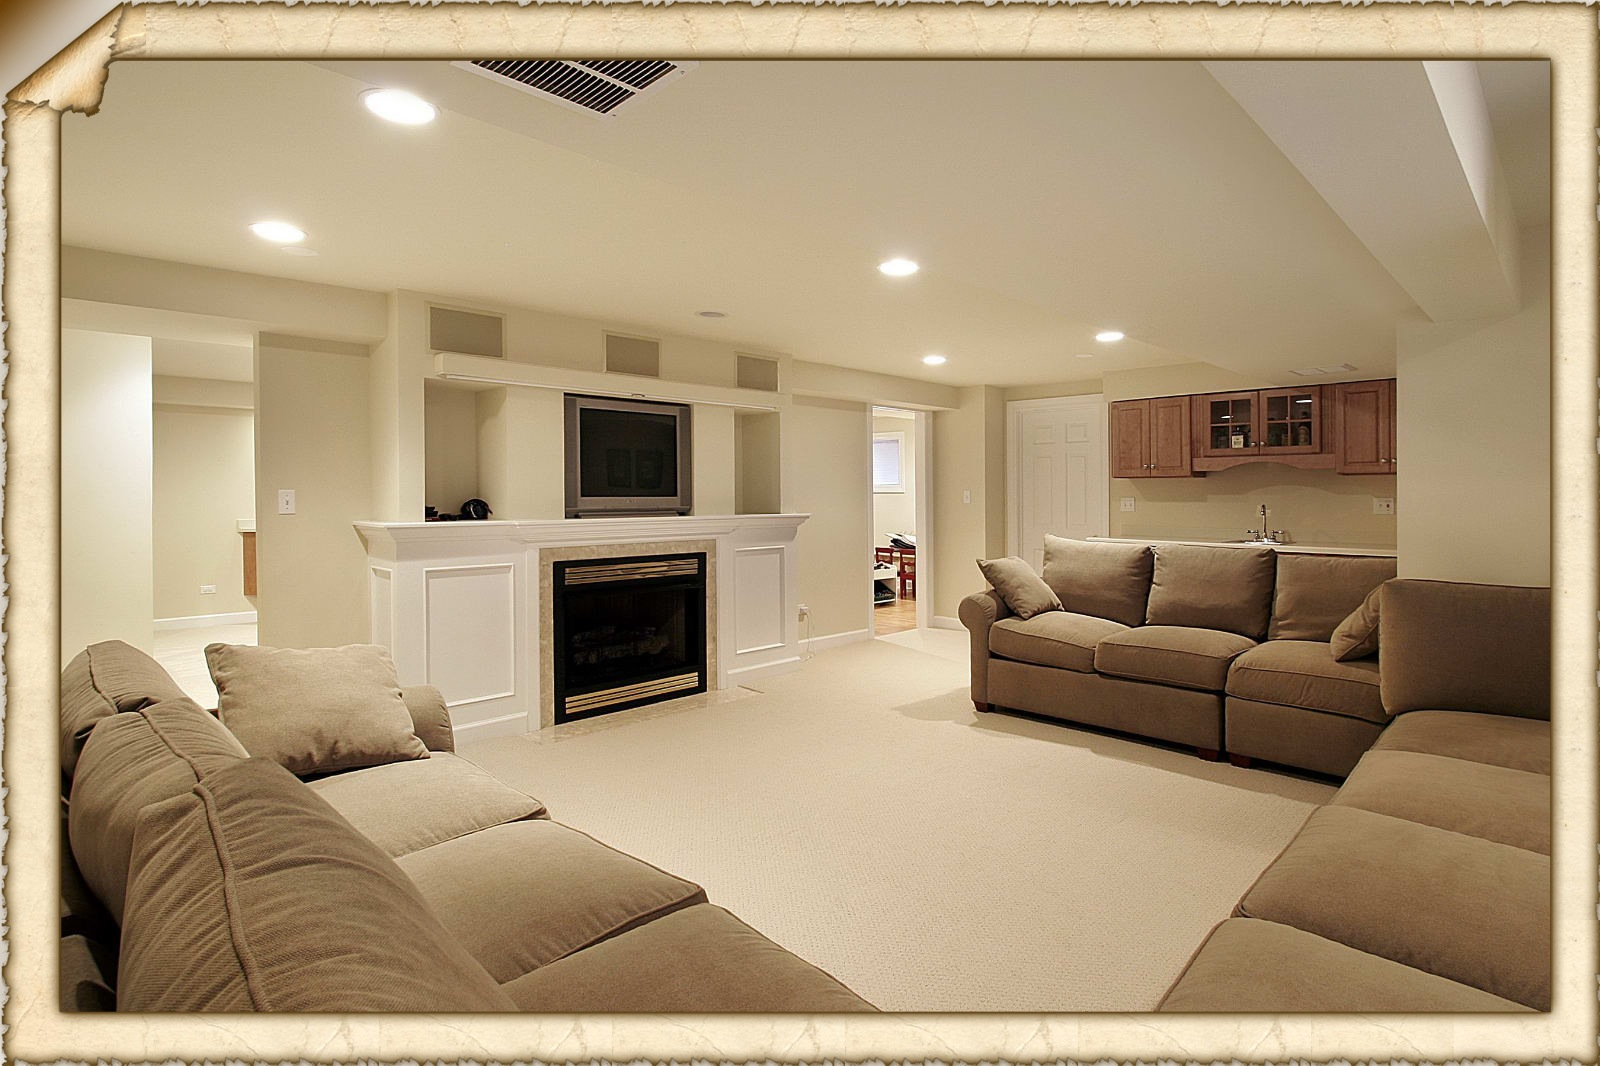 Wonderful Finished Basement Design Ideas 1600 x 1066 · 354 kB · jpeg